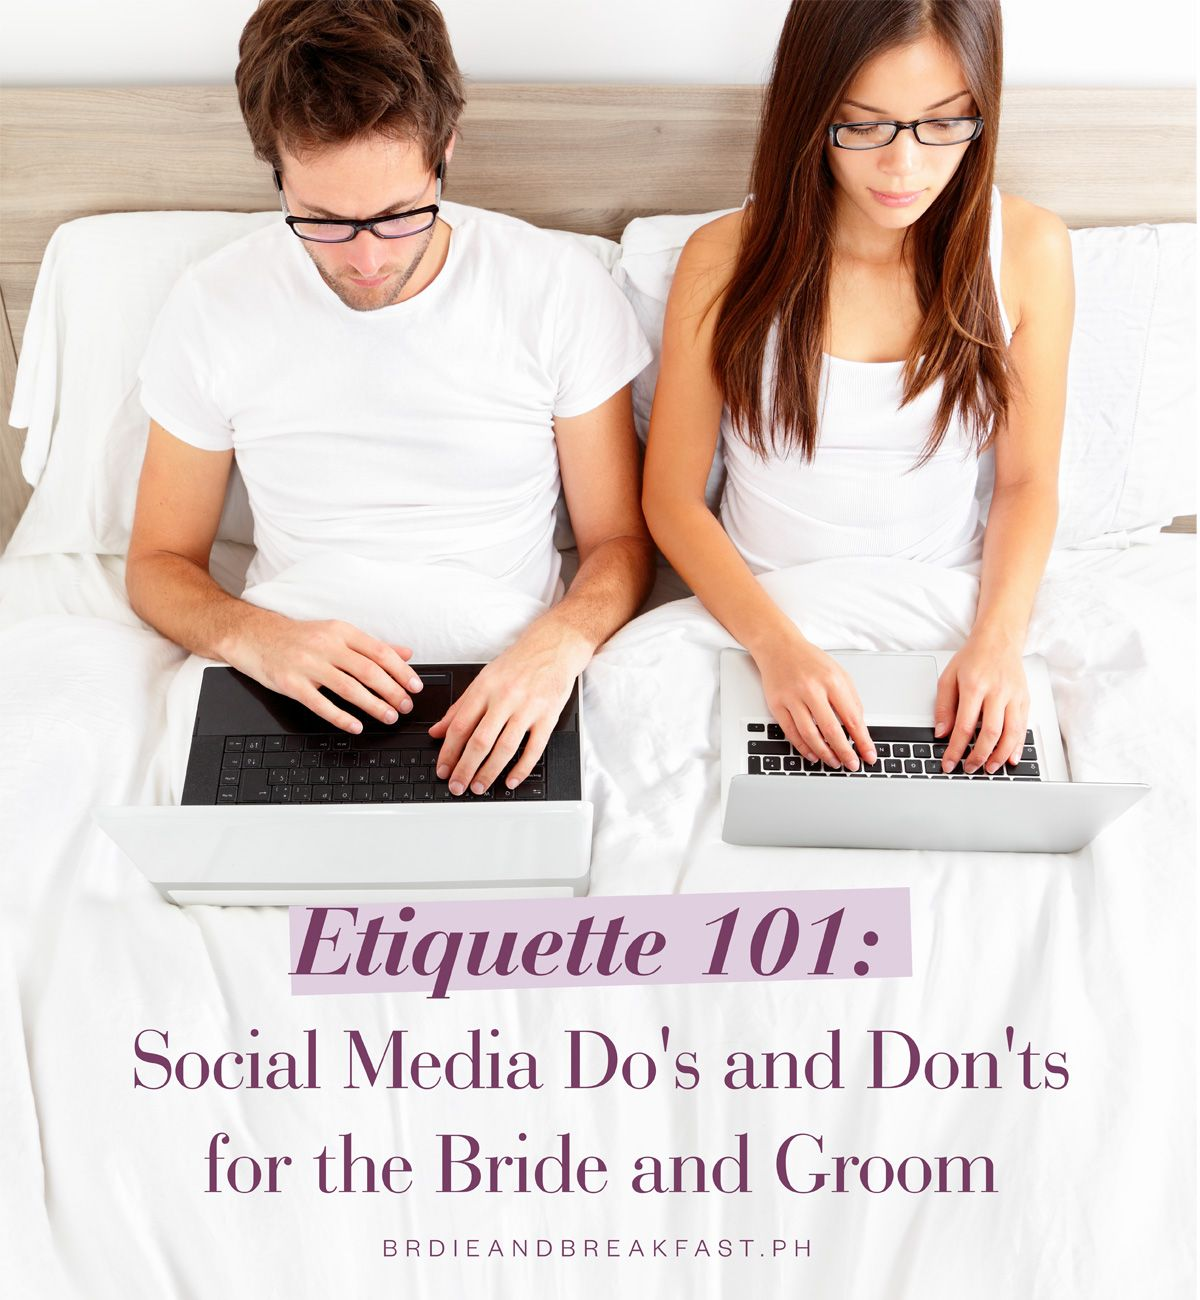 Etiquette 101 Social Media Do's and Don'ts for the Bride